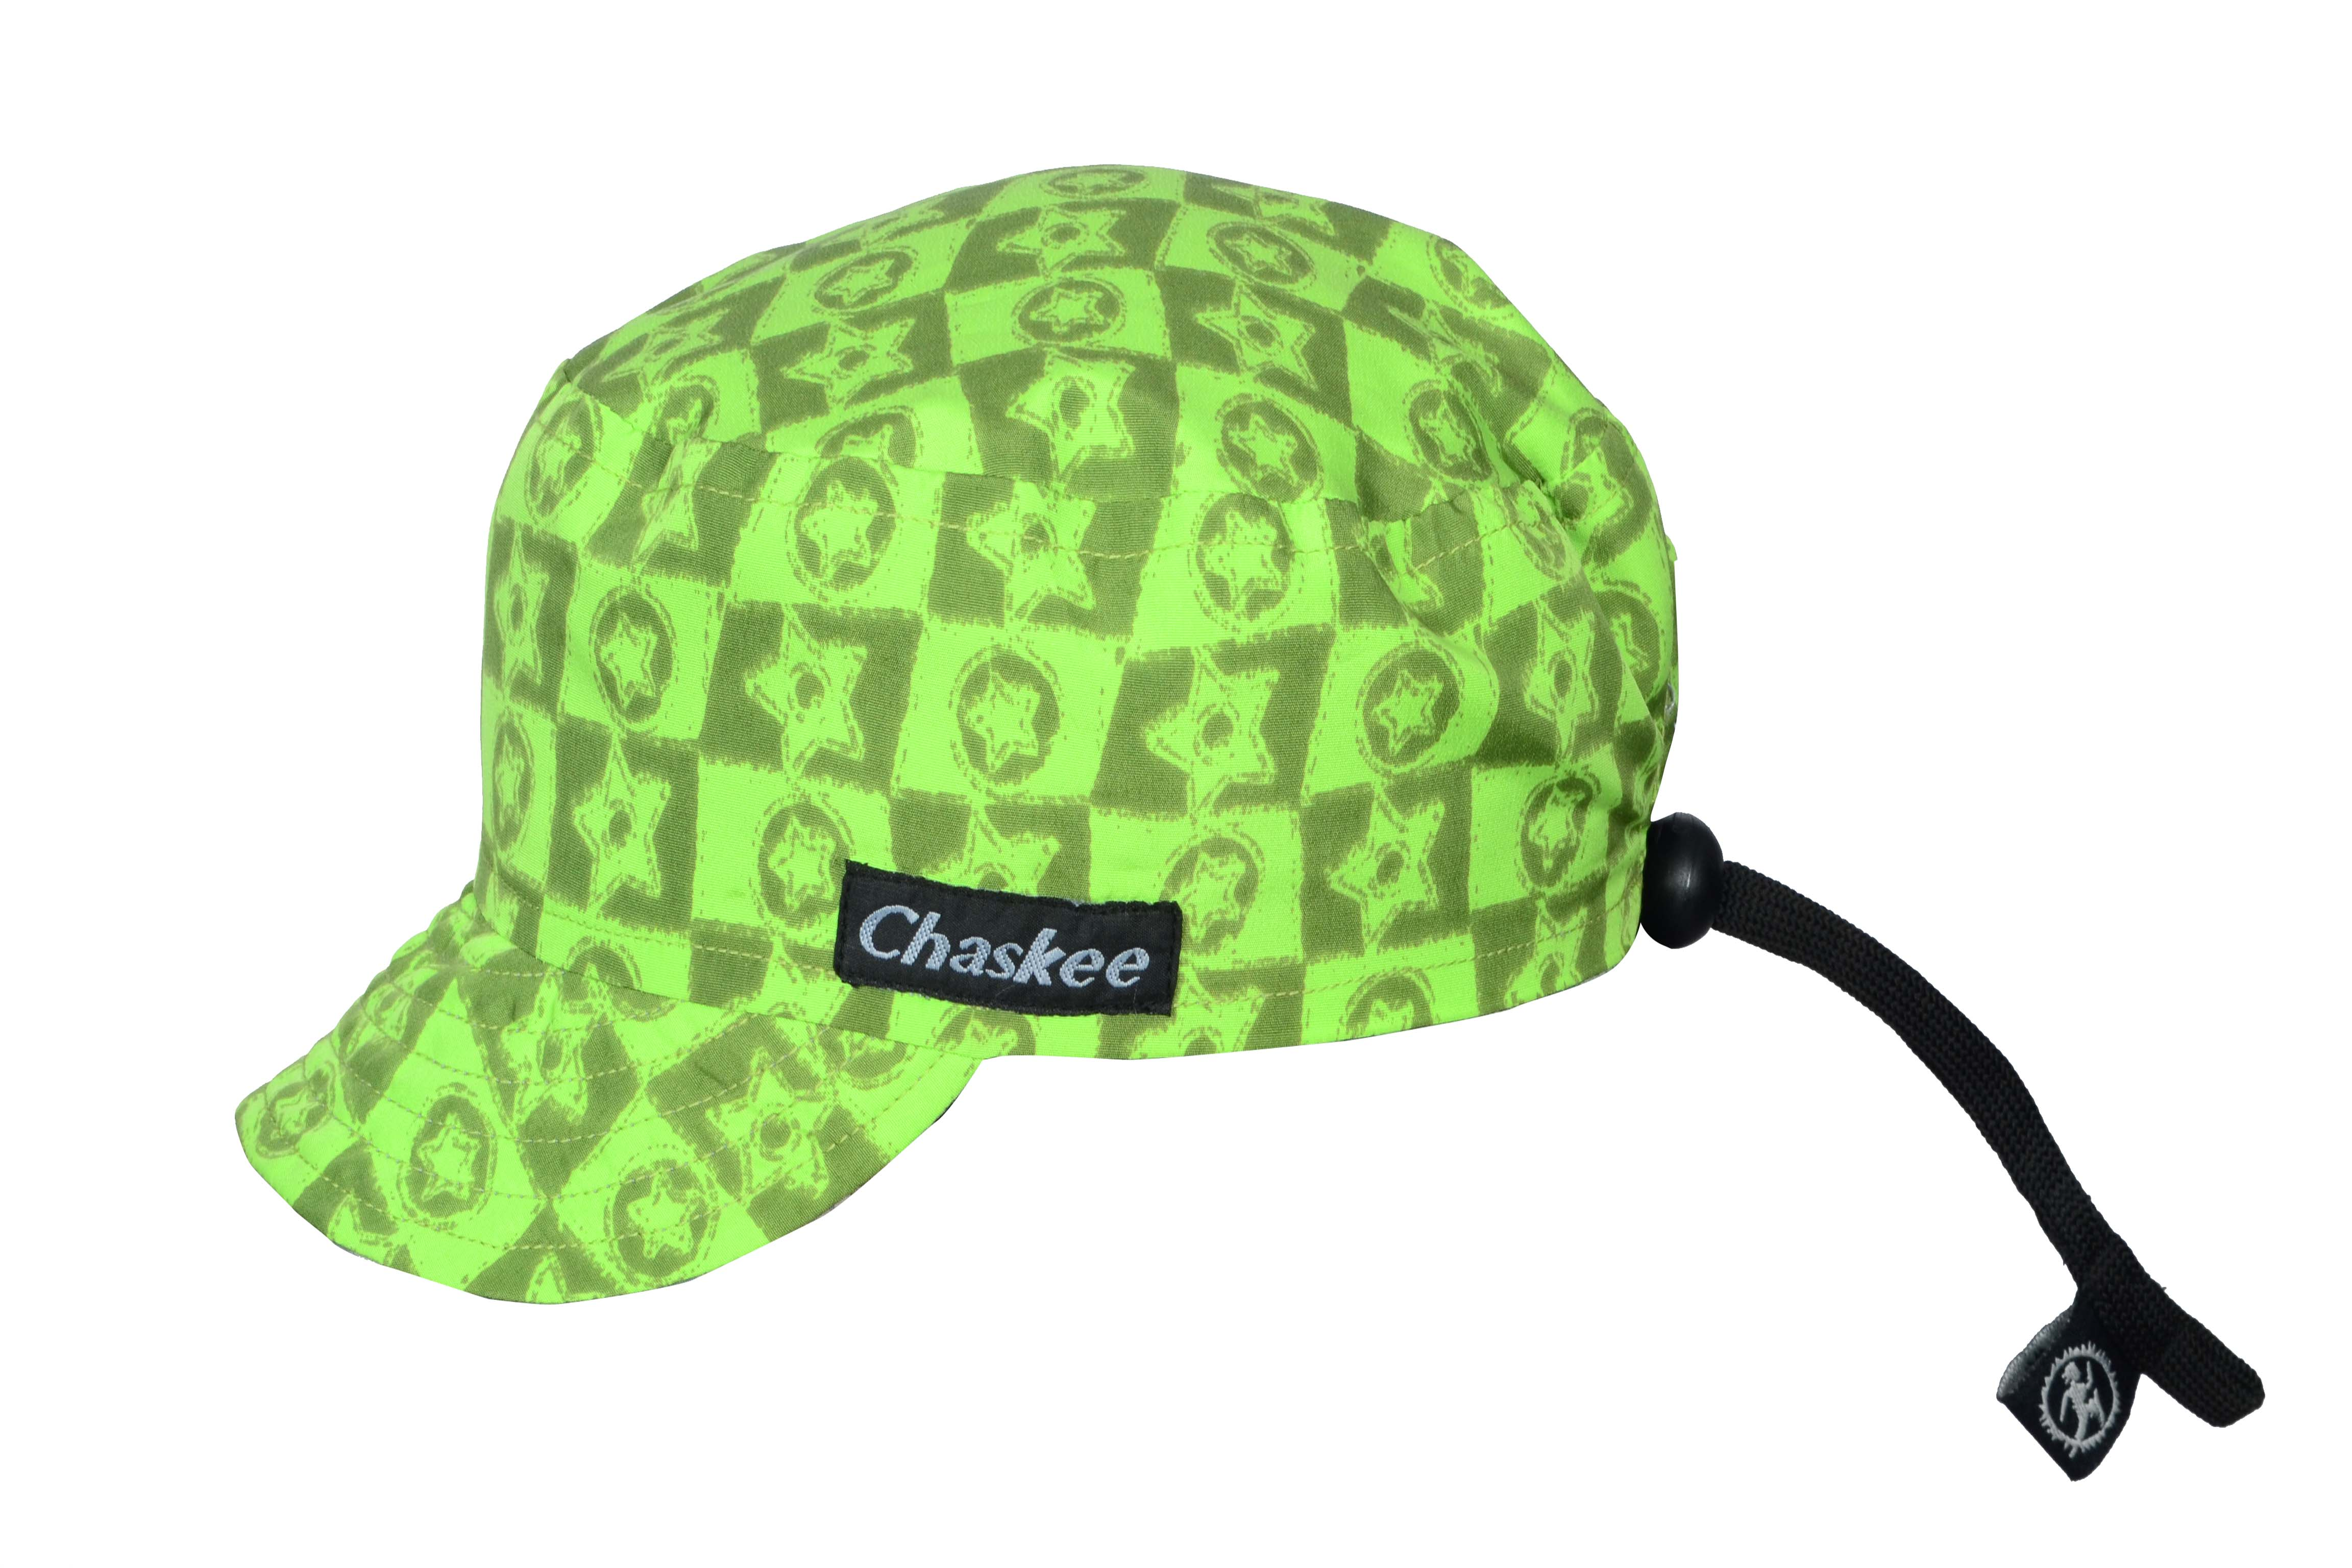 Chaskee Junior Rev Cap - Kinder Wendekappe grün